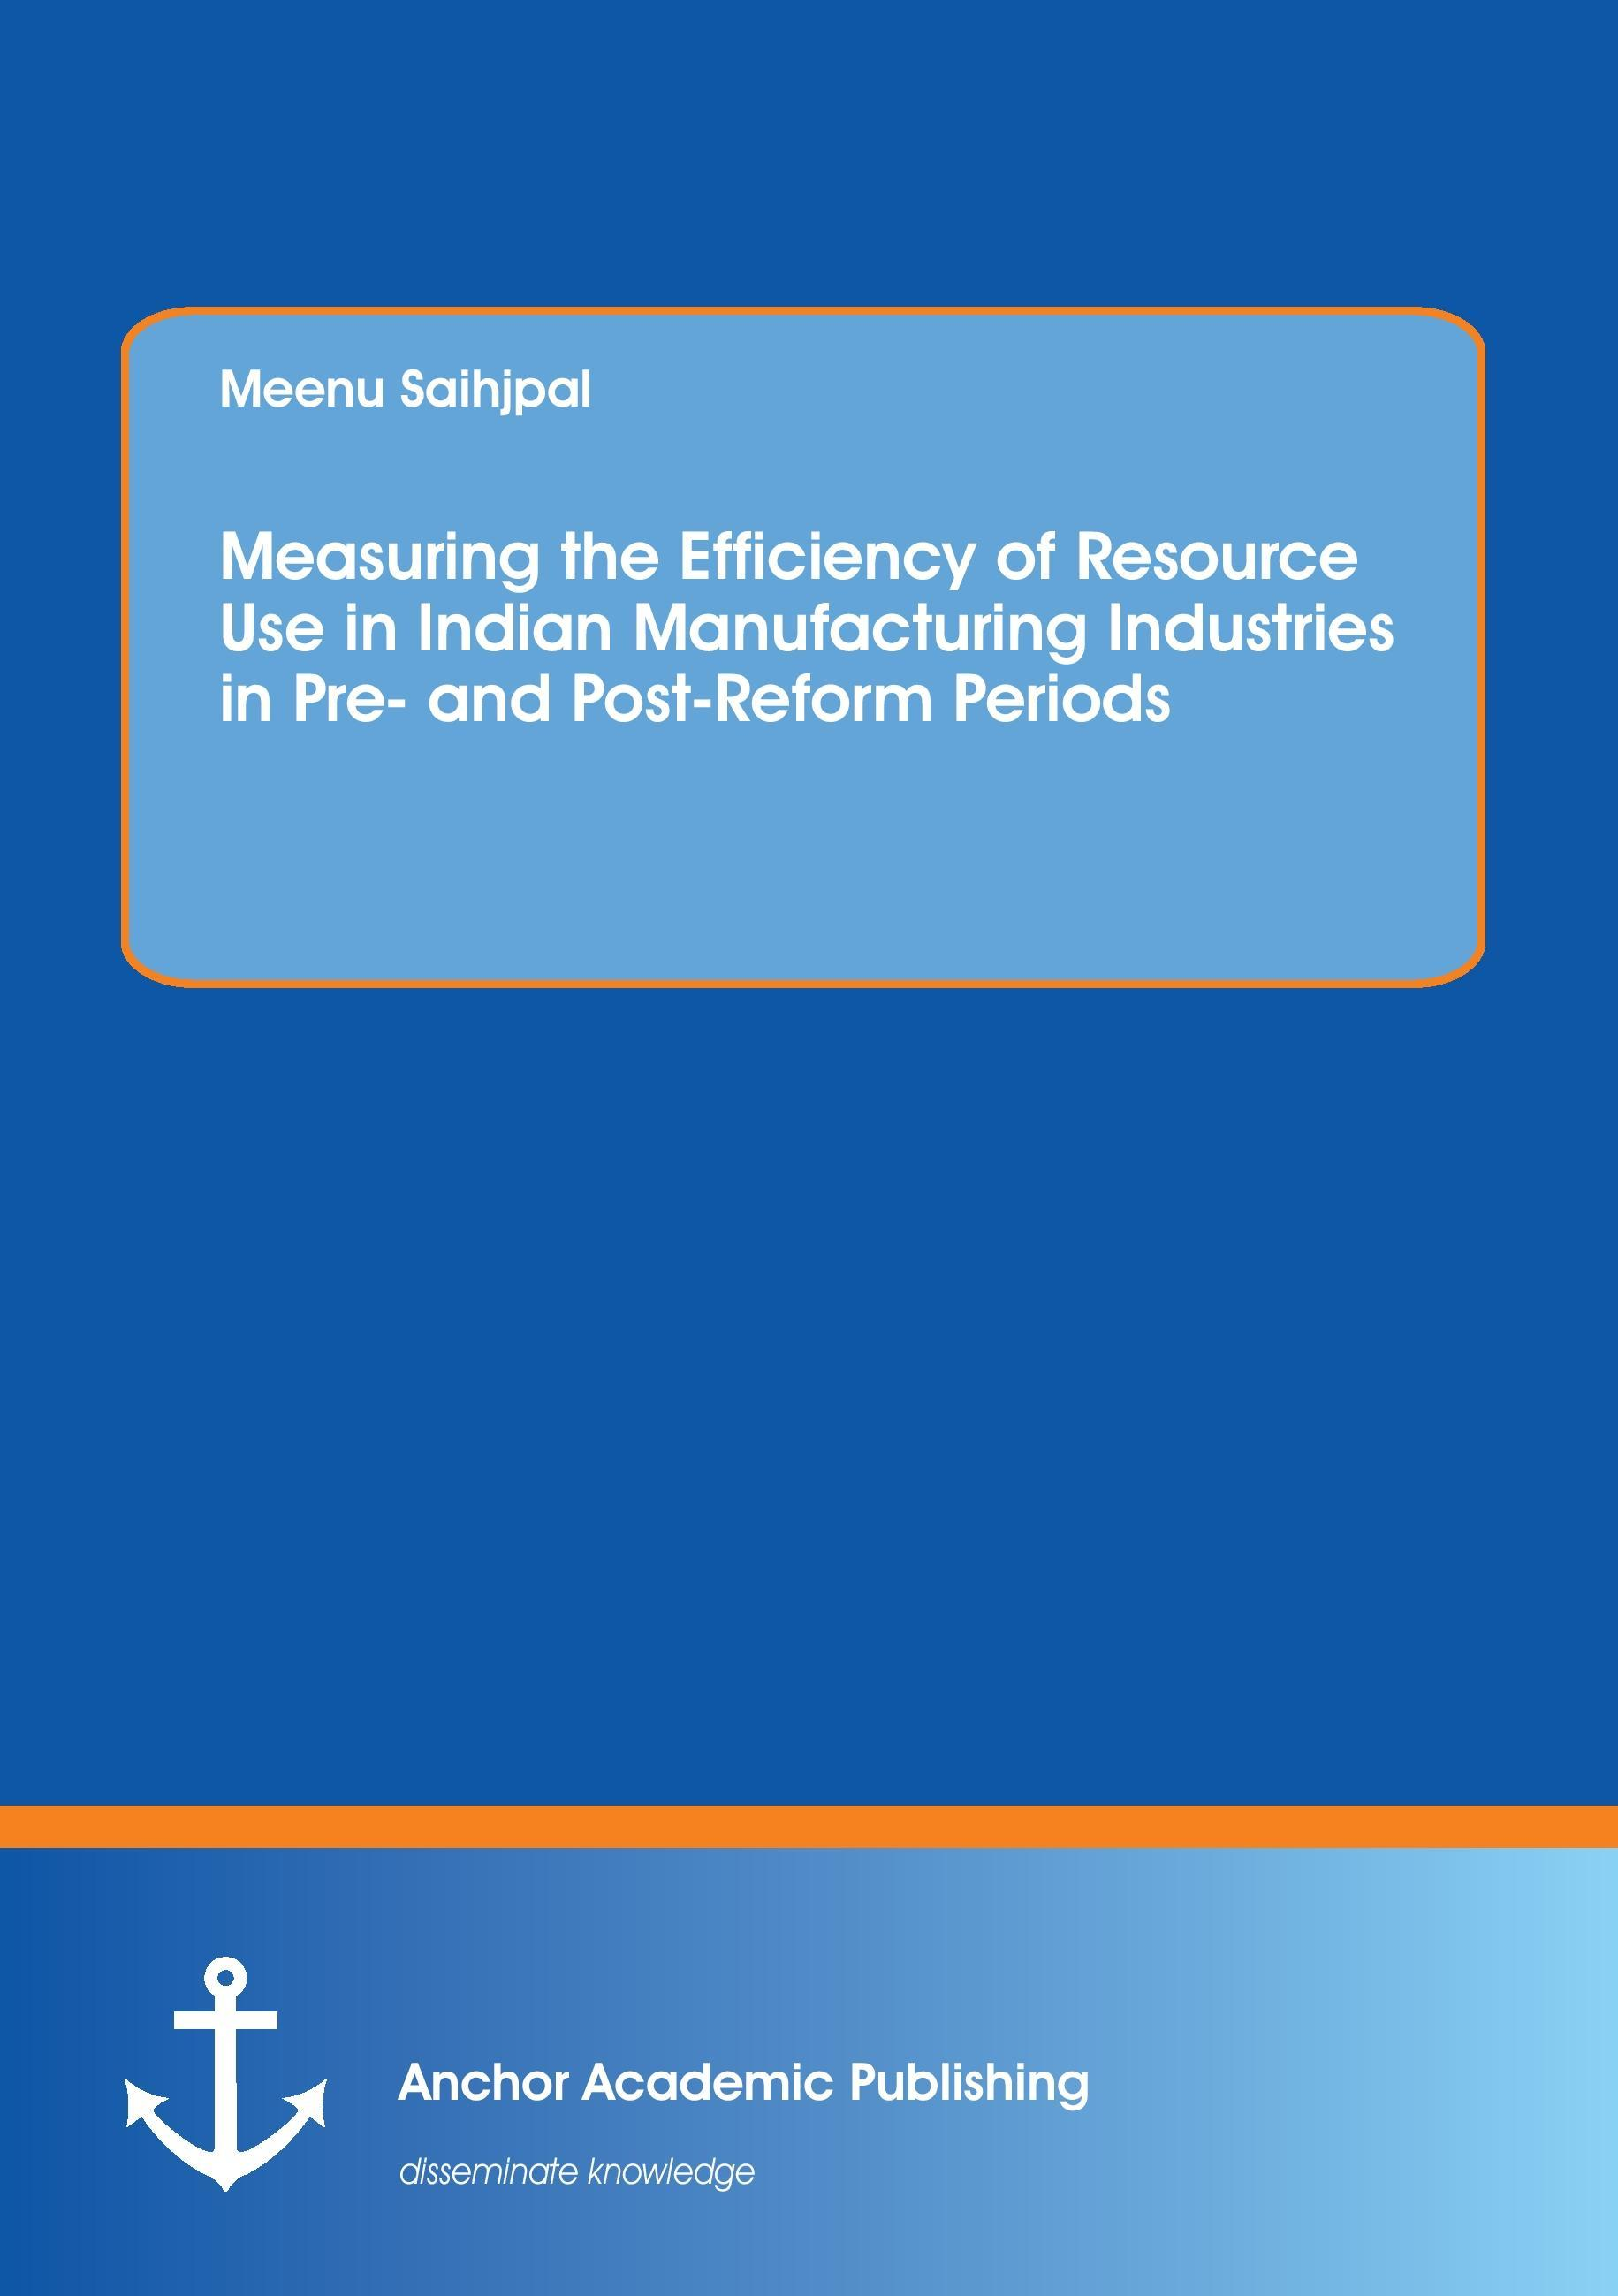 Measuring the Efficiency of Resource Use in Indian Manufactu ... 9783960670179